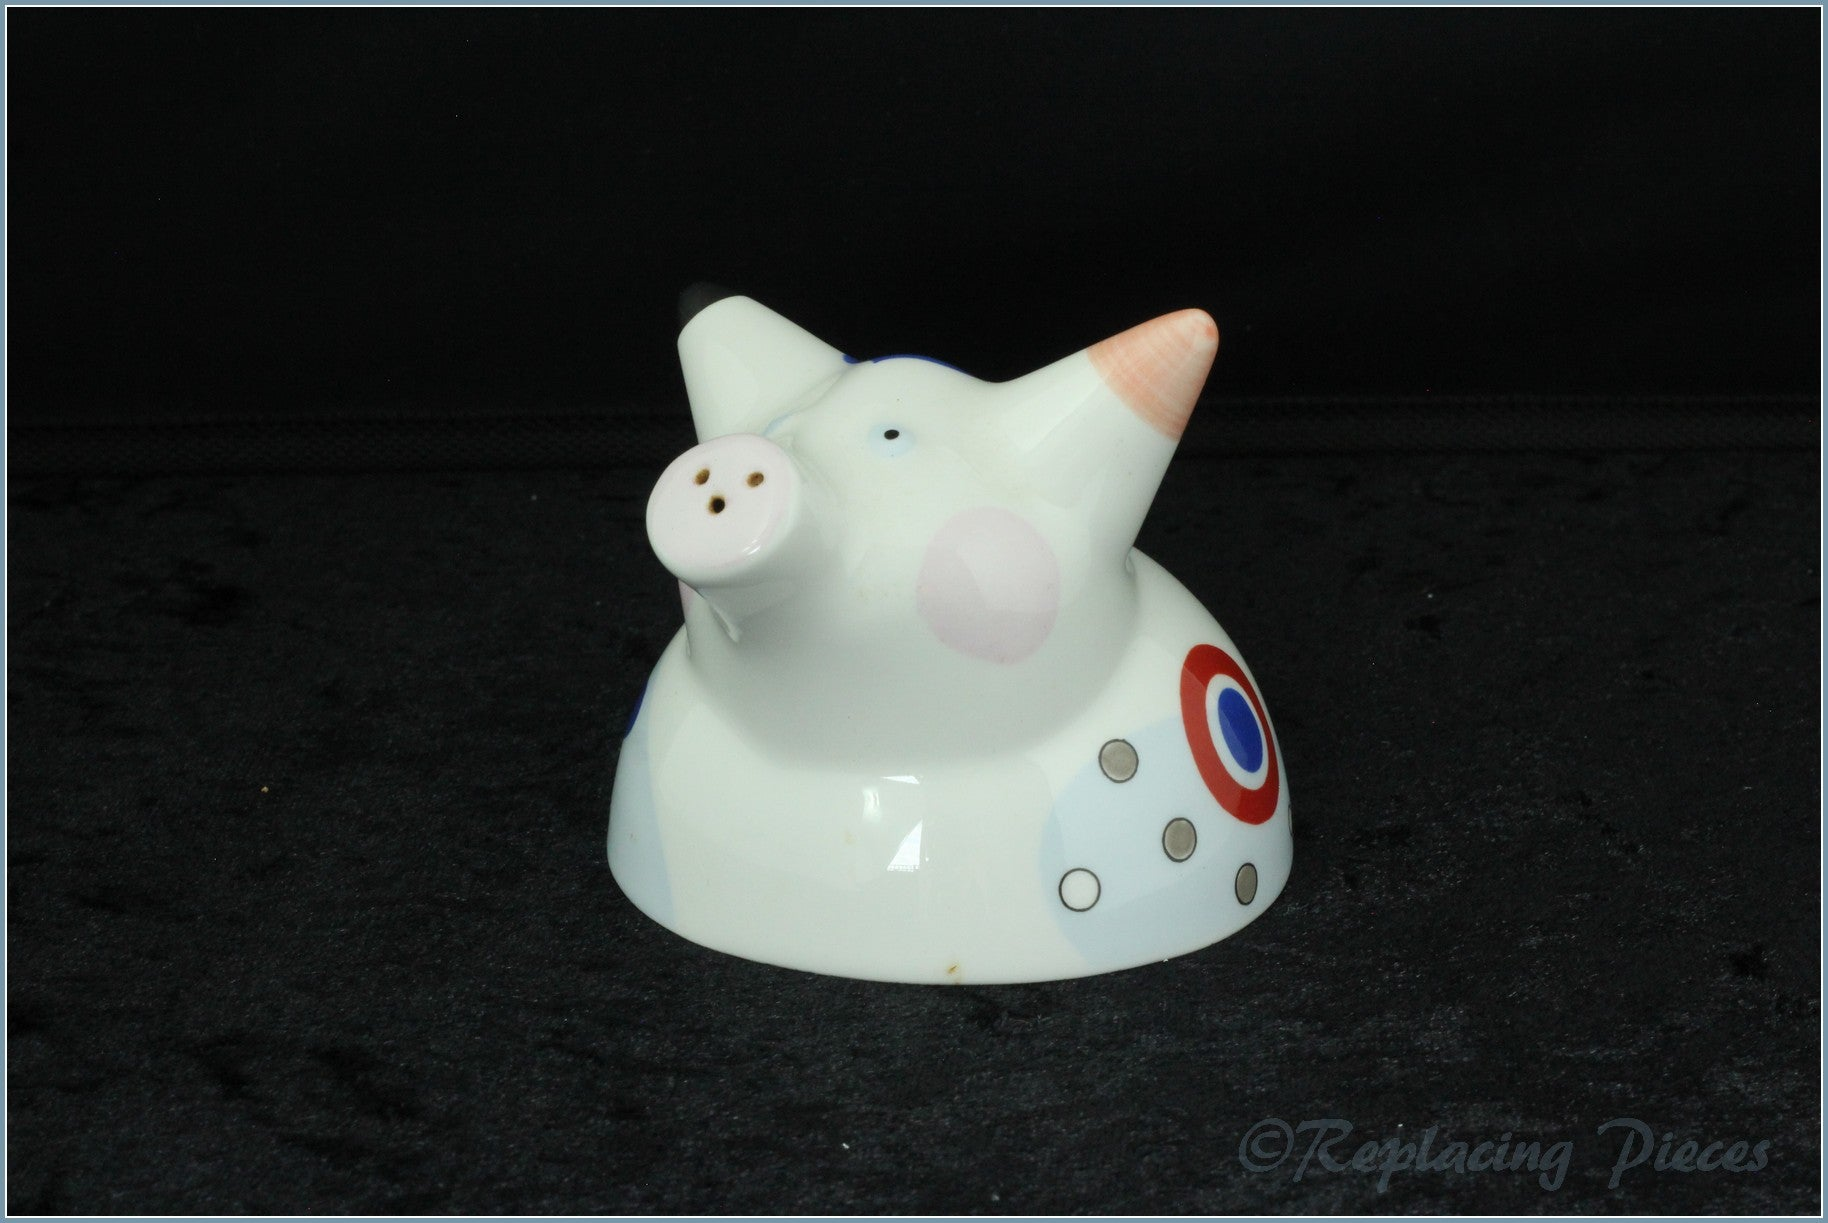 Villeroy & Boch - Animal Park - Salt (Pig)